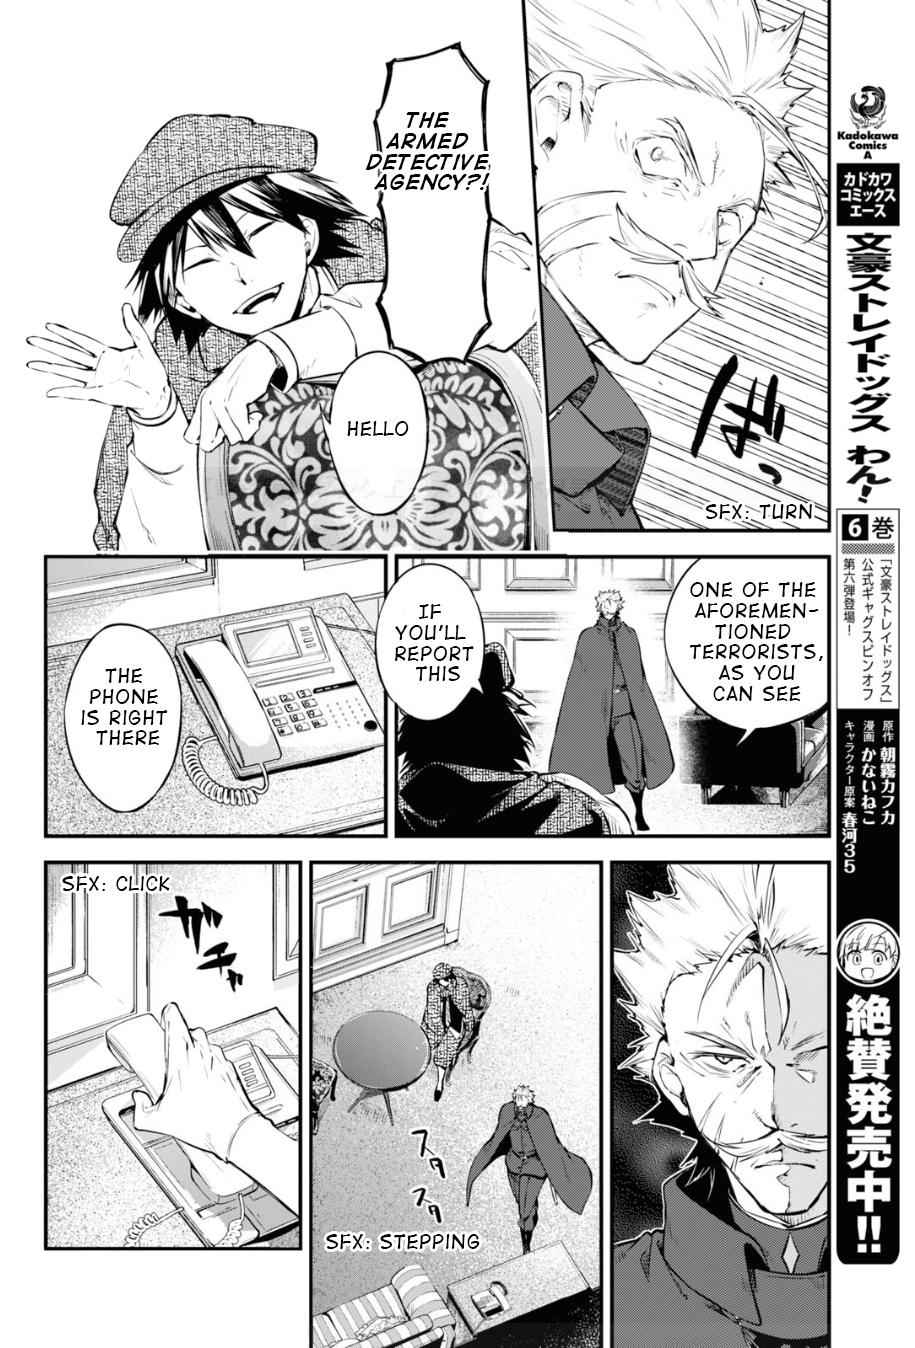 Bungou Stray Dogs Chapter 82 Page 19